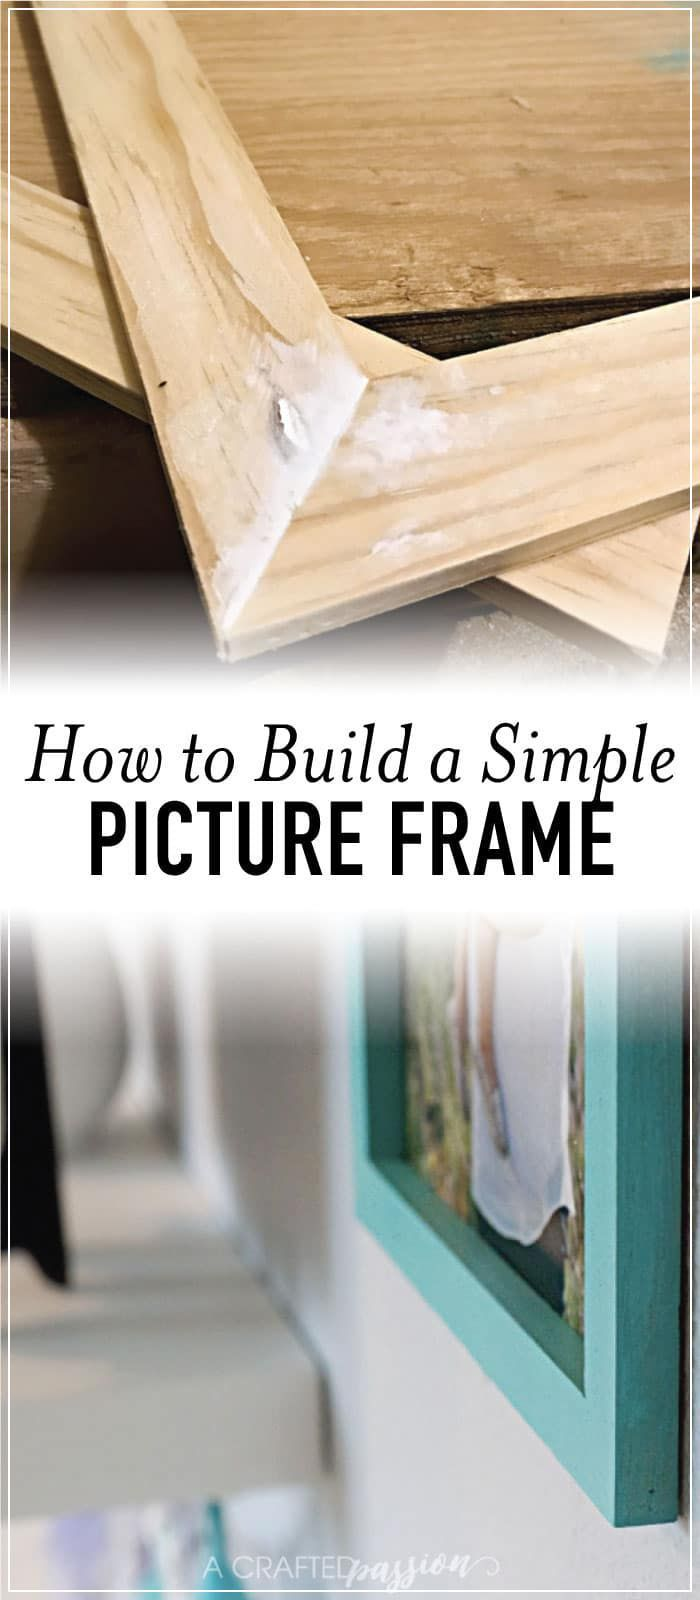 Top 5 Excellent Wood Projects Woodworking Projects Diy Picture Frames Picture Frame Decor